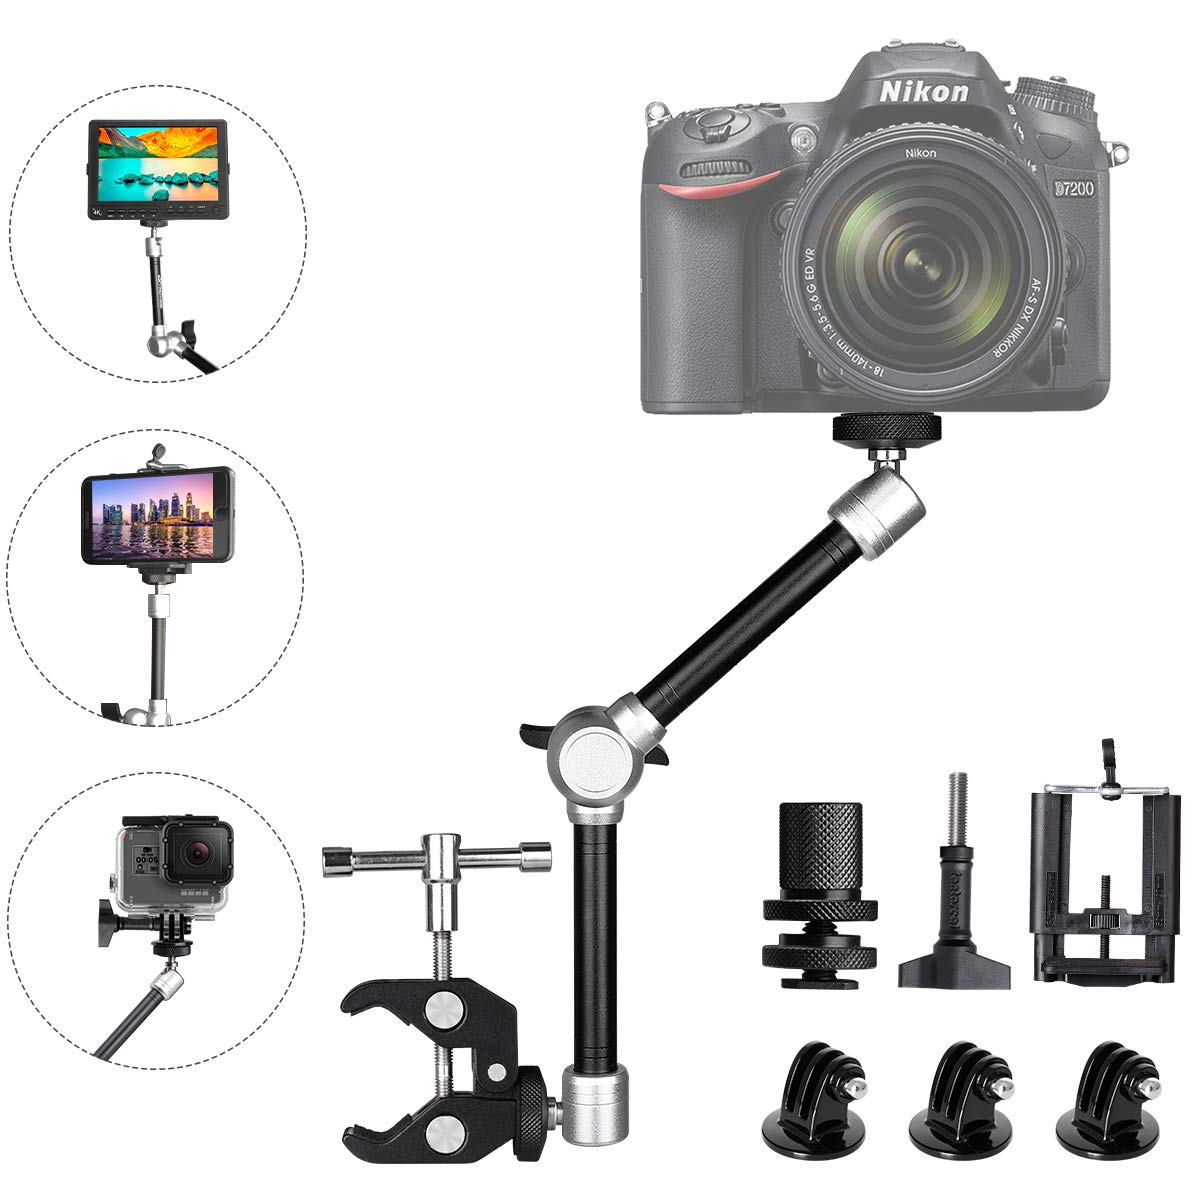 "11"" Adjustable Articulating Israeli Friction Magic Arm Video Rig Camera Clamp Mount Compatible for Gopro Sony Action Camera/DSLR/Camera Rig/LCD Monitor/DV /LED Lights/Flash Light/Smartphone"